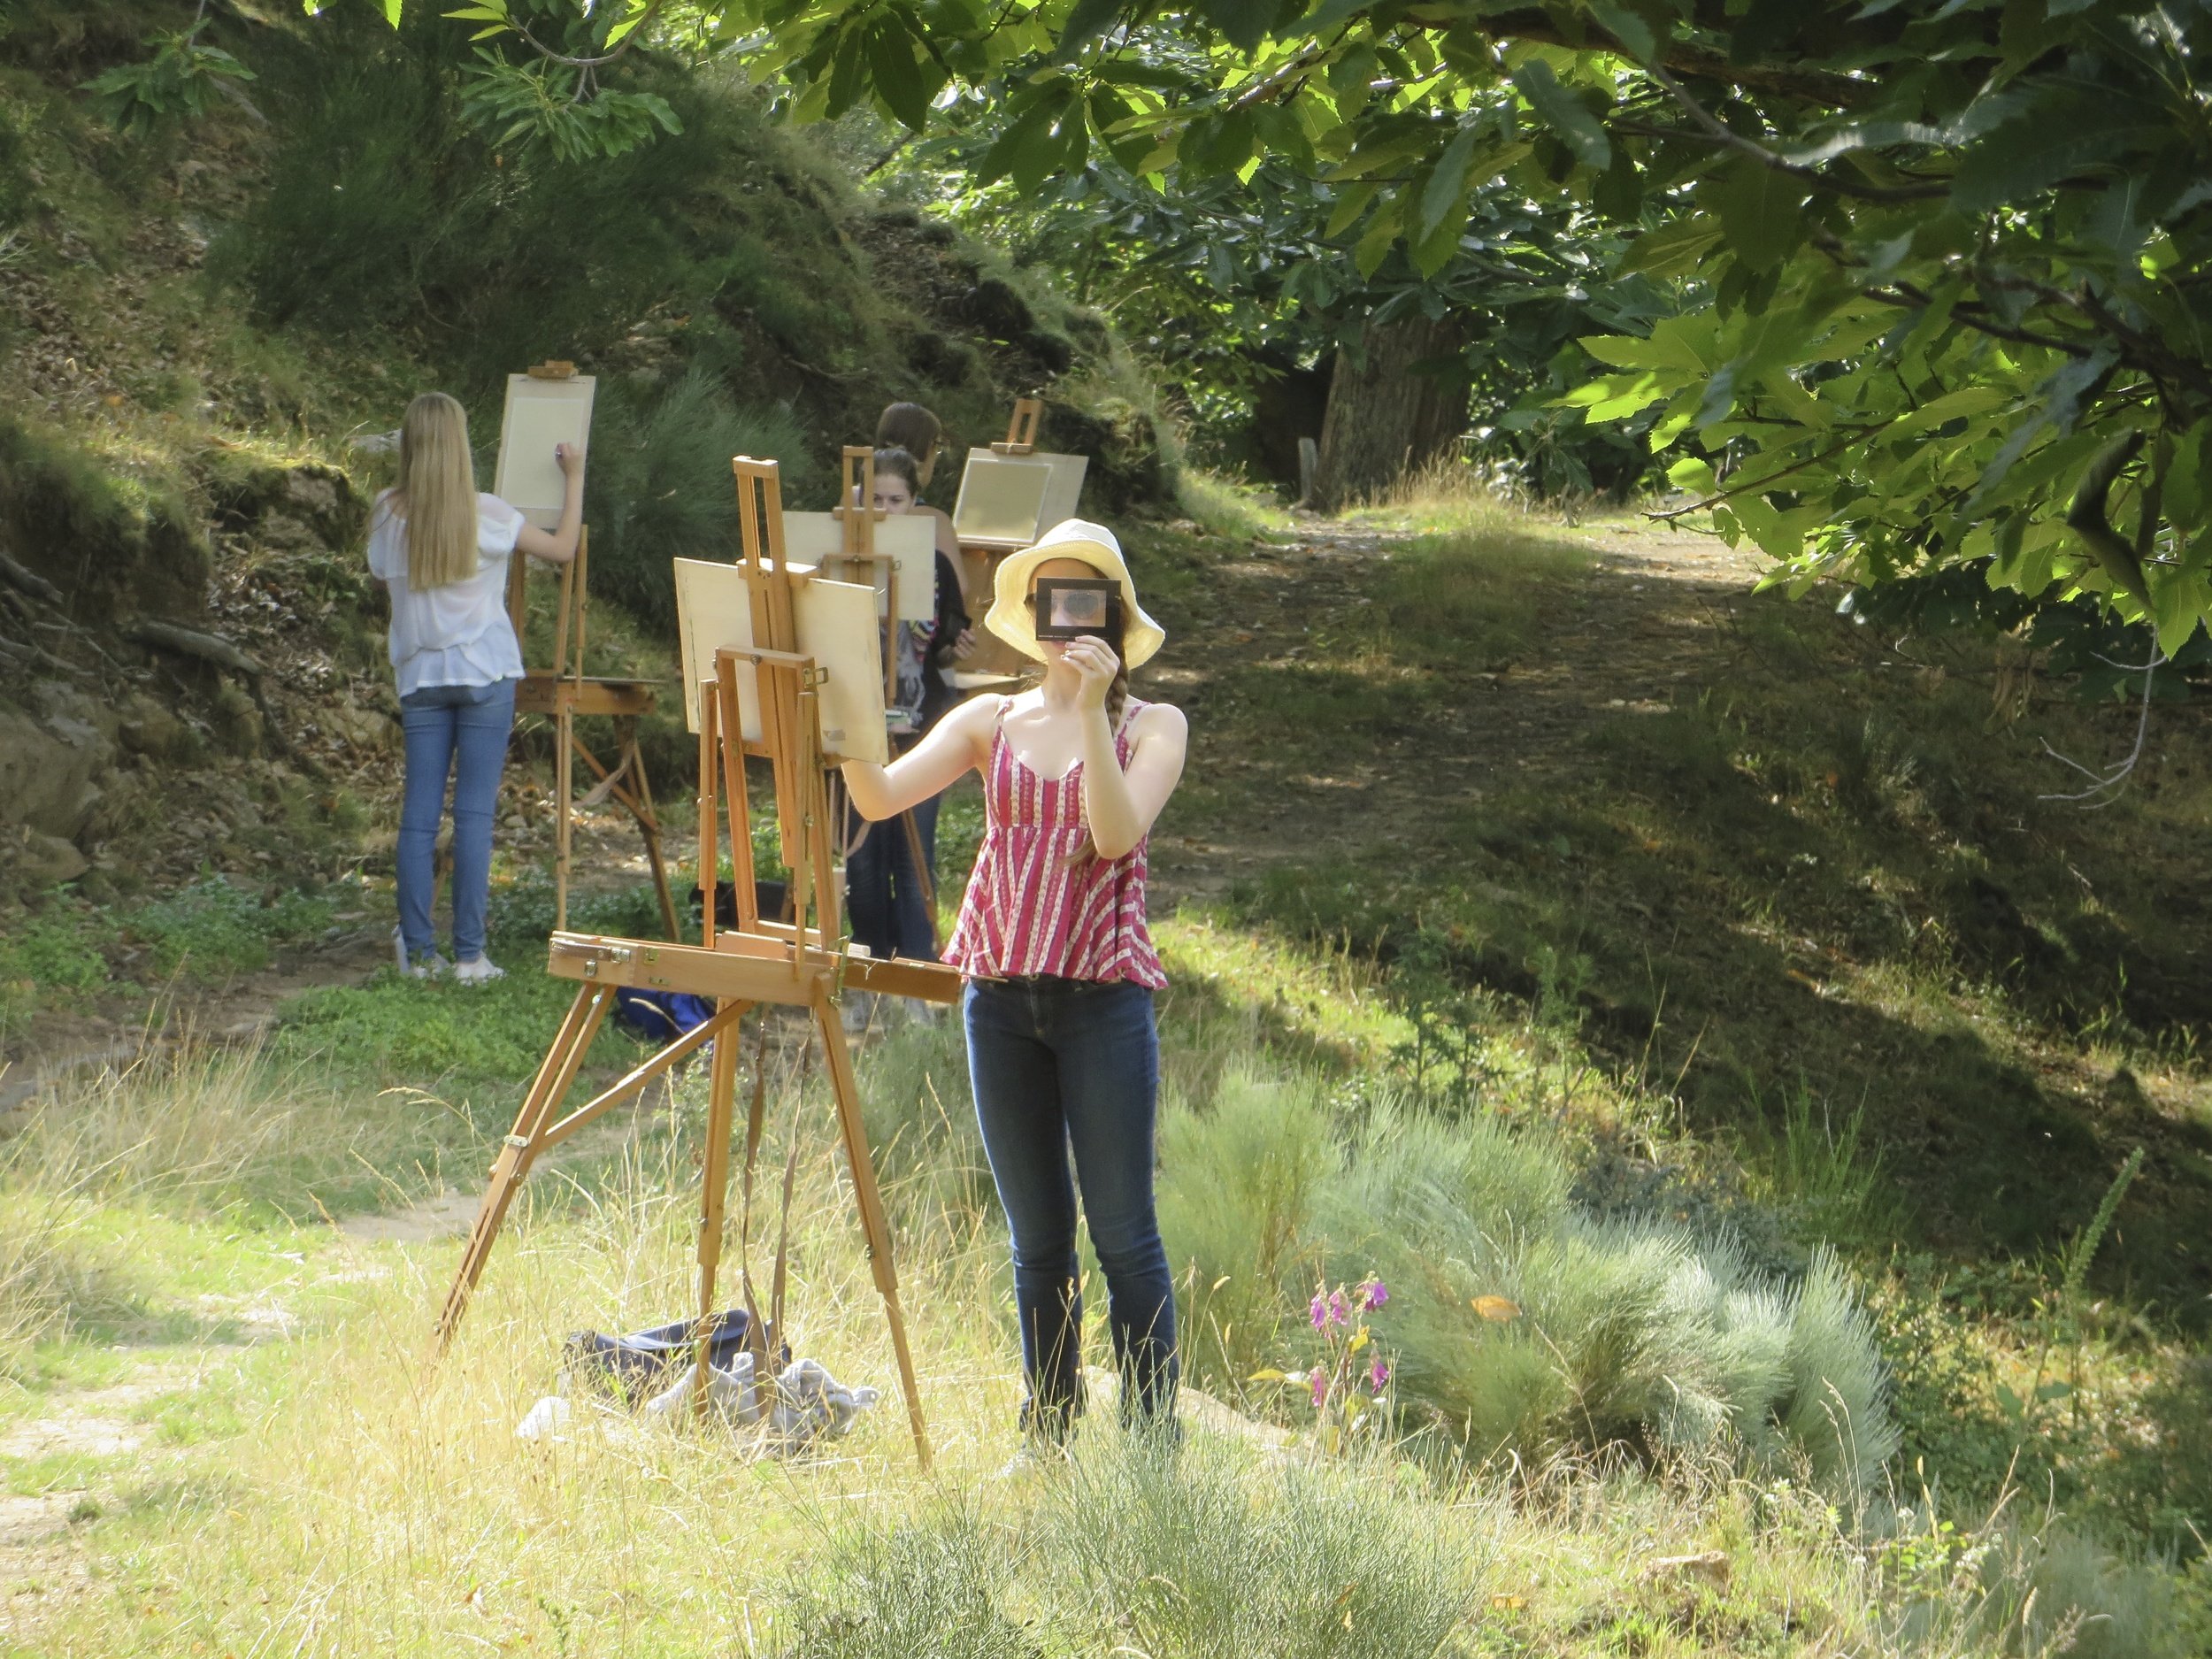 summer painting course for high school students at les tapies summer programs in france